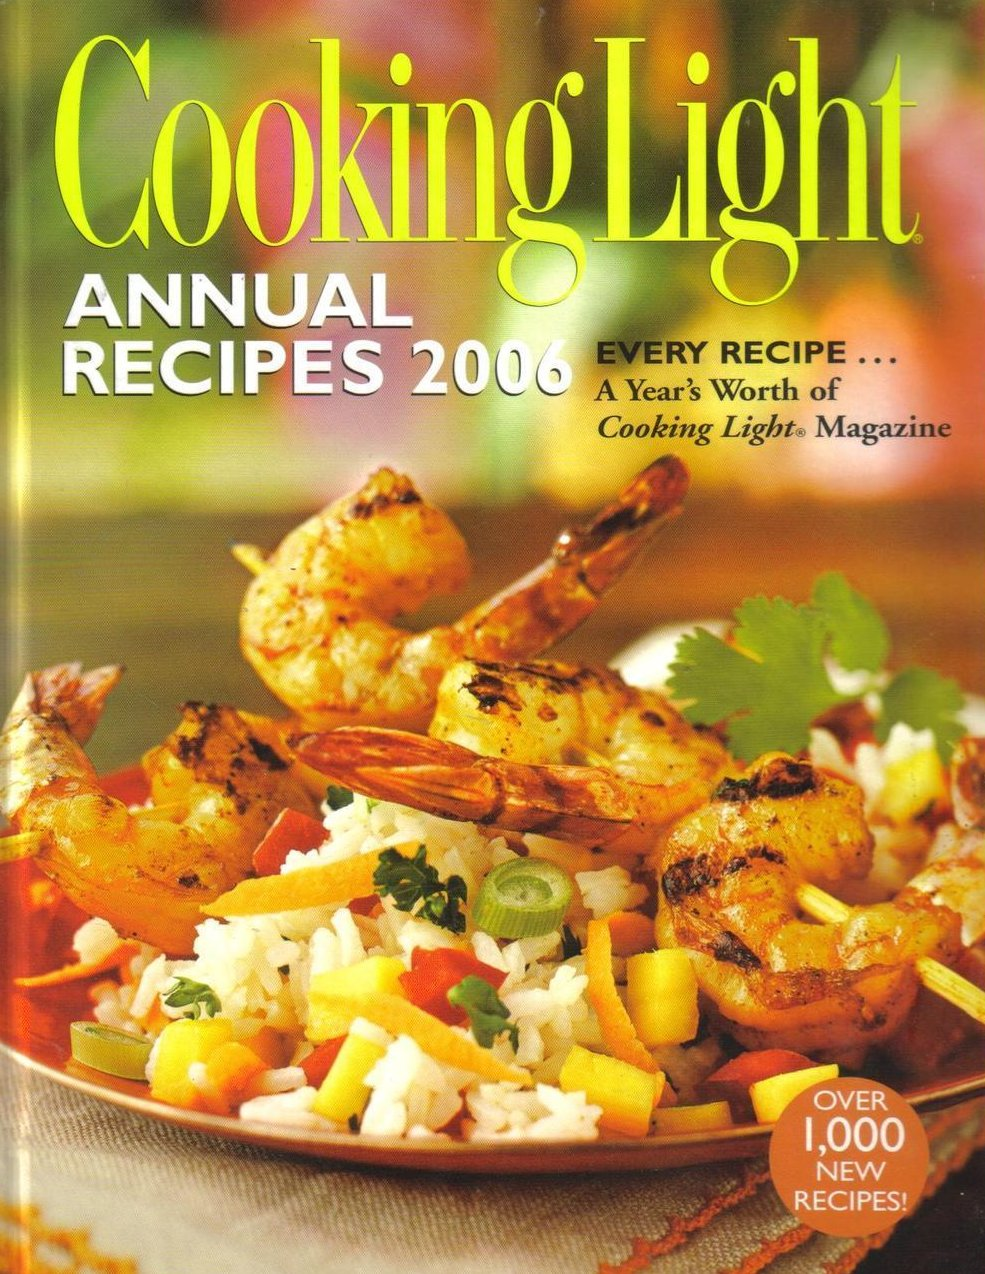 Cooking Light Annual Recipes 2006 Large HCDJ